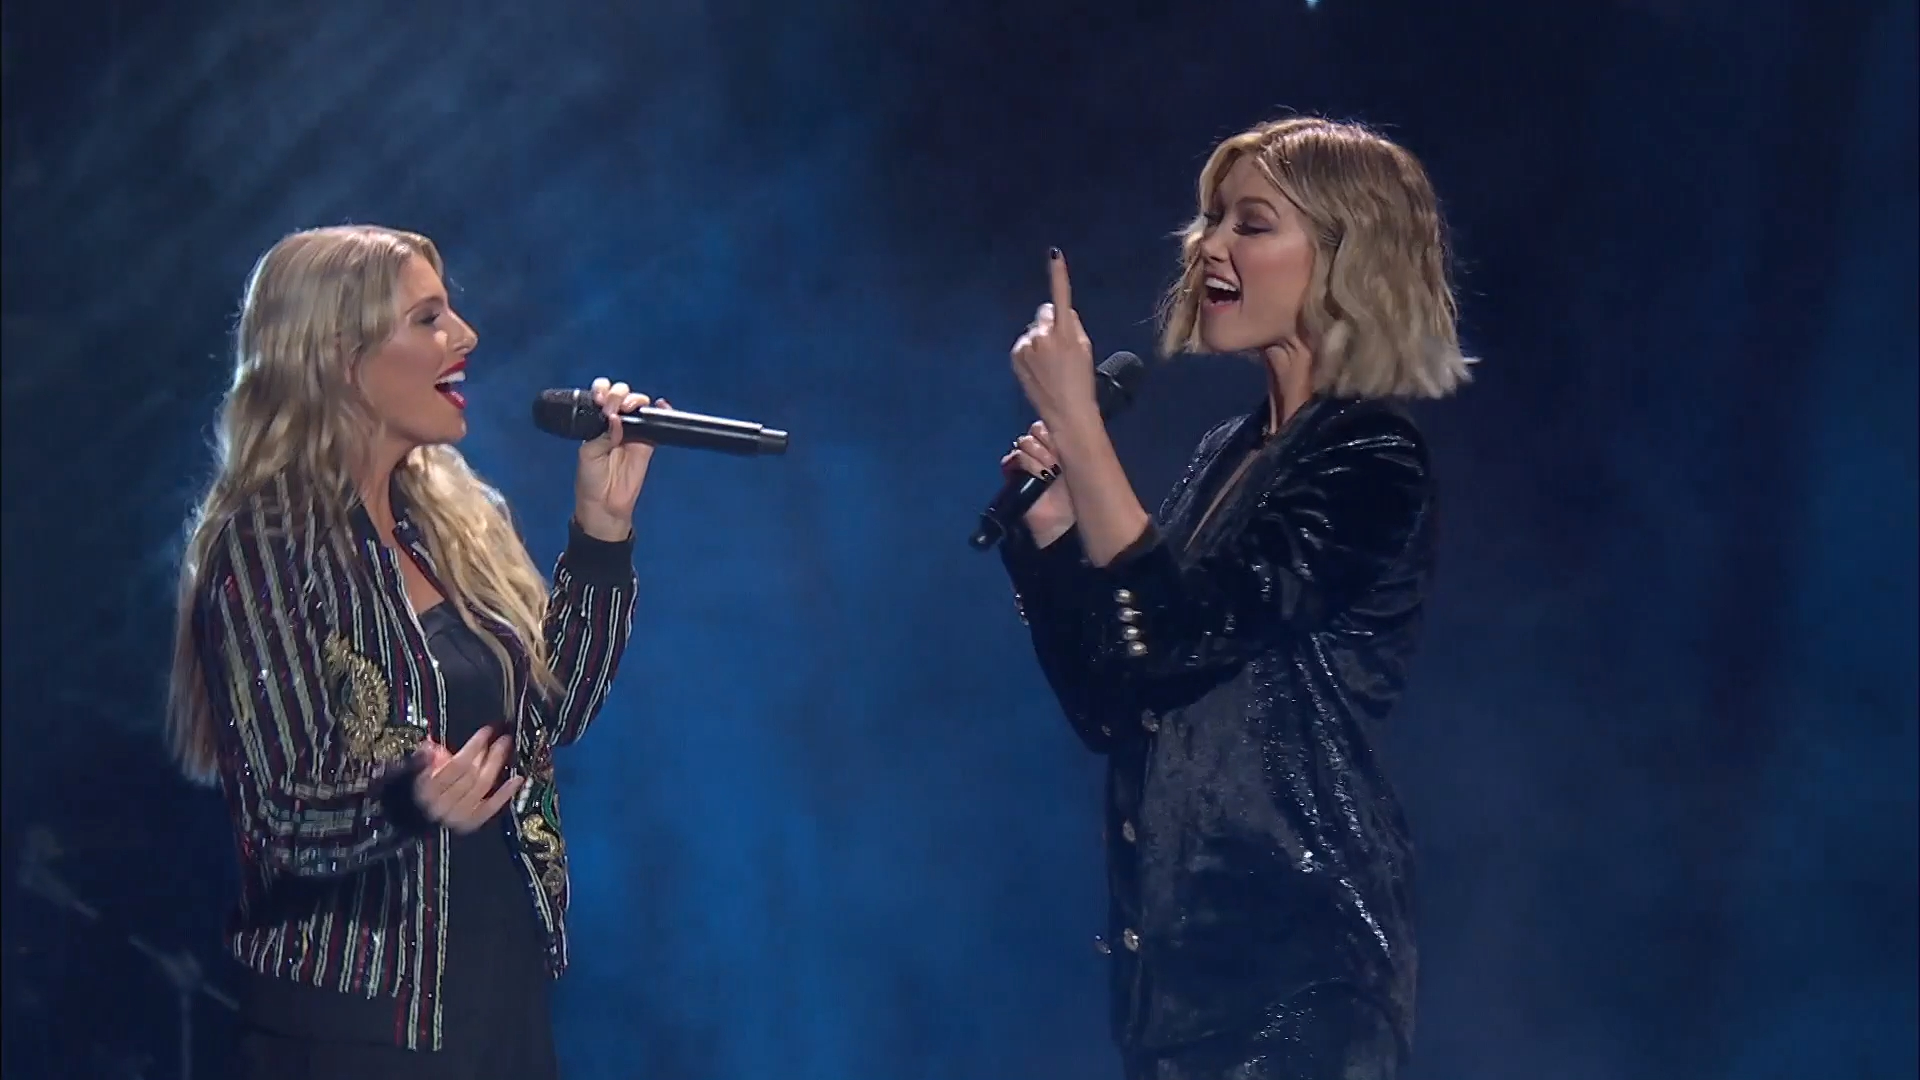 Fan gets to sing on stage with Delta Goodrem